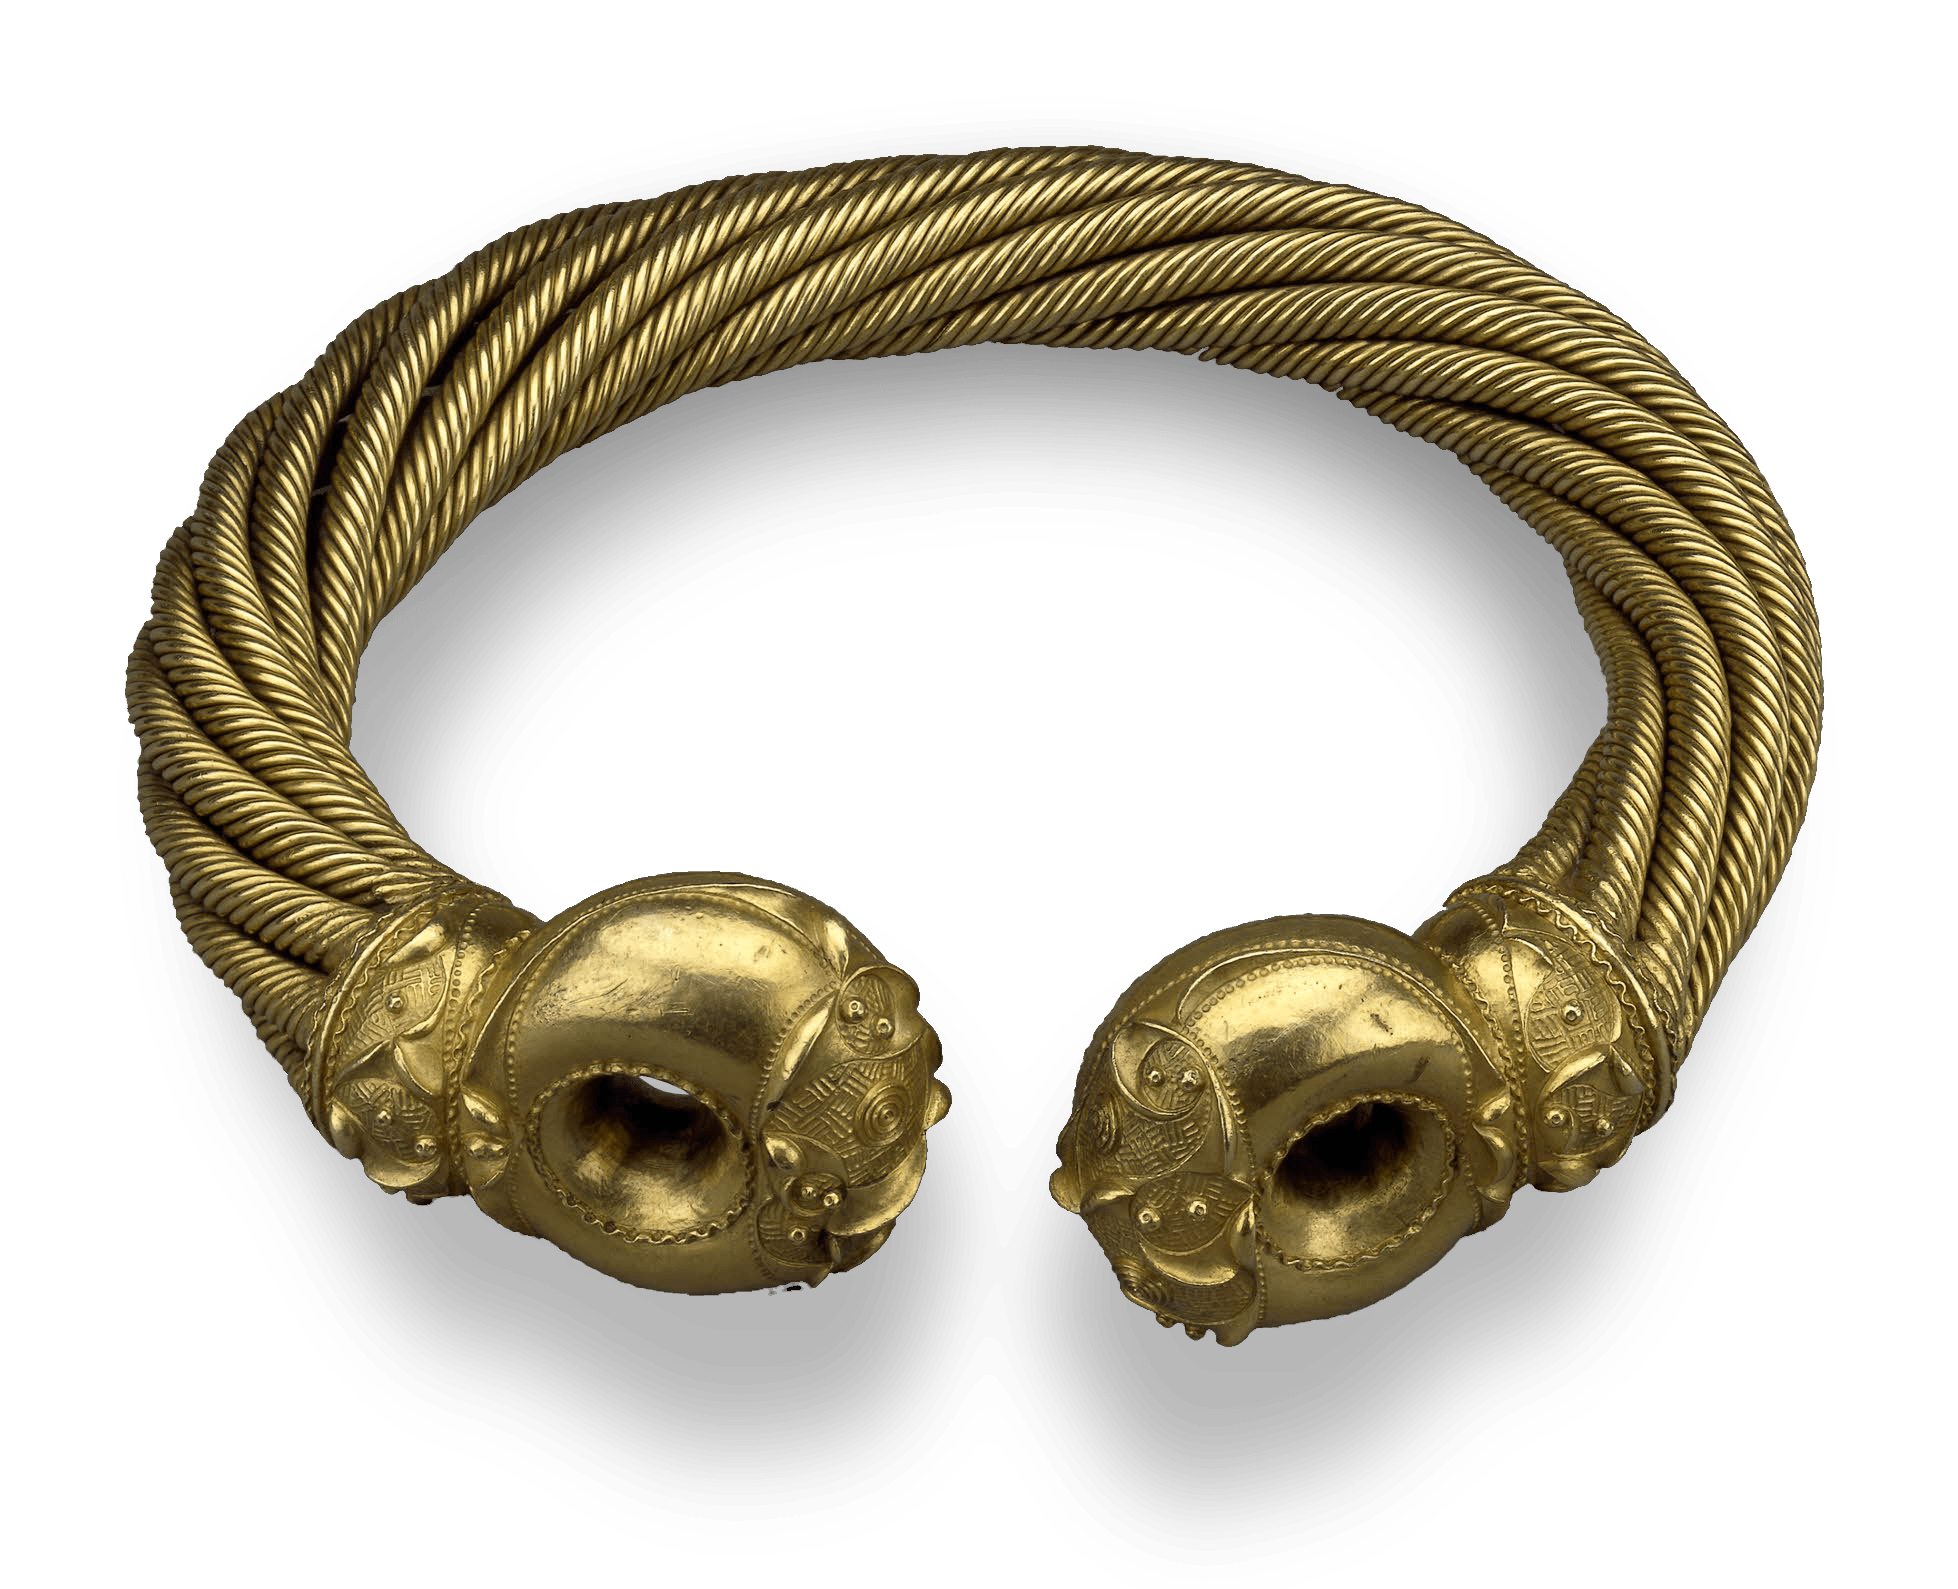 The Snettisham Great Torc, 50 BCE — The Celts